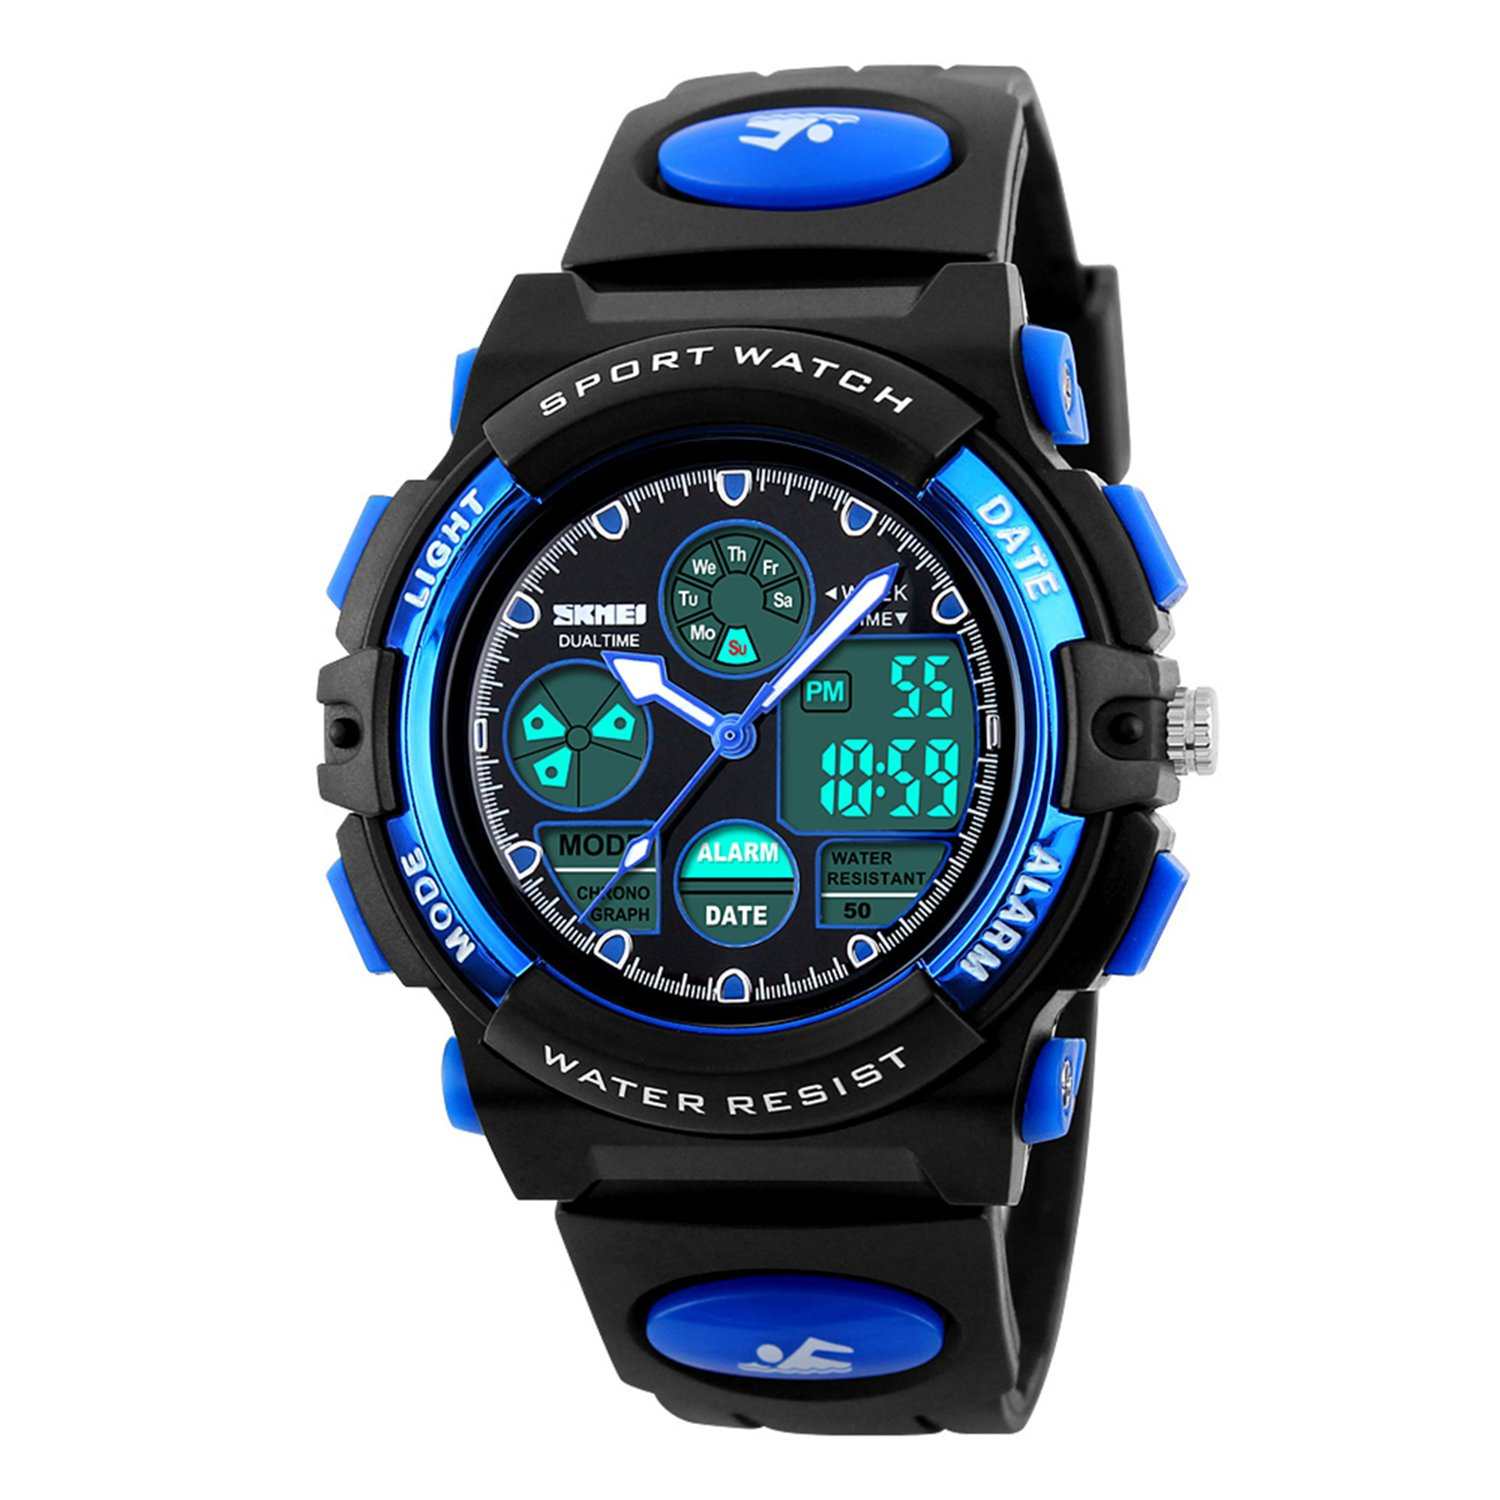 Boys Watch Digital Outdoor Sports 50M Waterproof Watches Boys Girls Children's Analog Quartz Wristwatch with Alarm - Black Blue by Dayllon